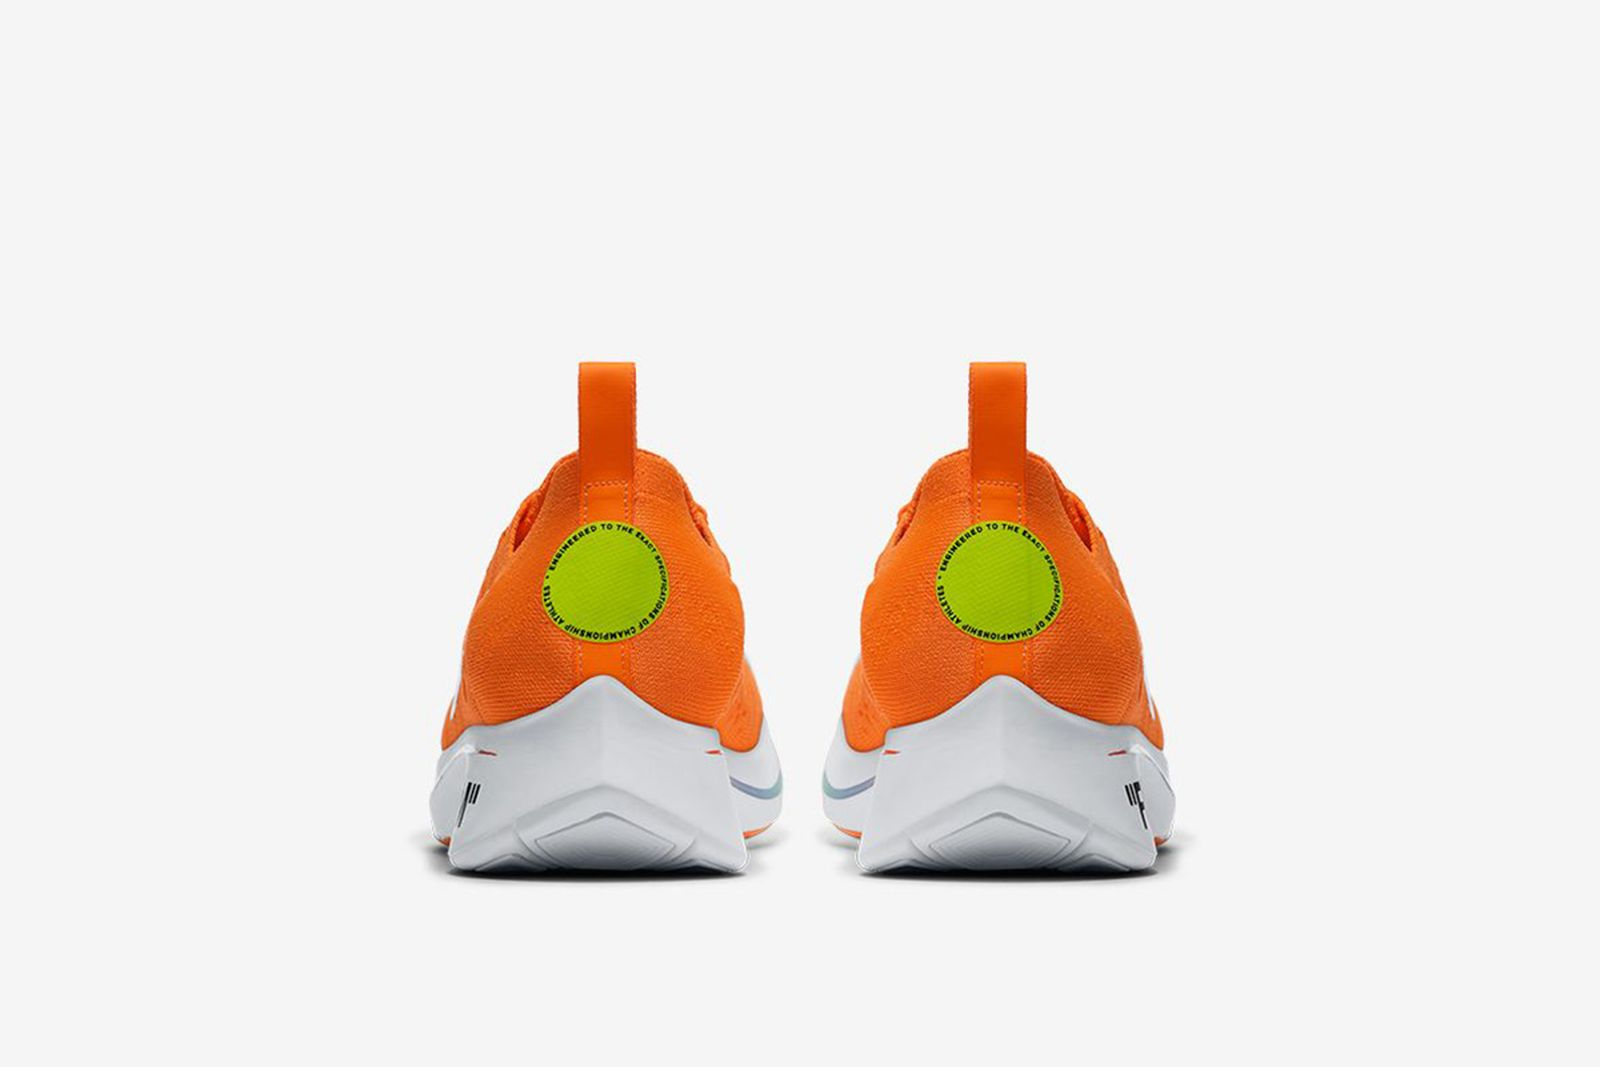 Zoom Fly Mercurial (orange)4 2018 FIFA World Cup Nike OFF-WHITE c/o Virgil Abloh